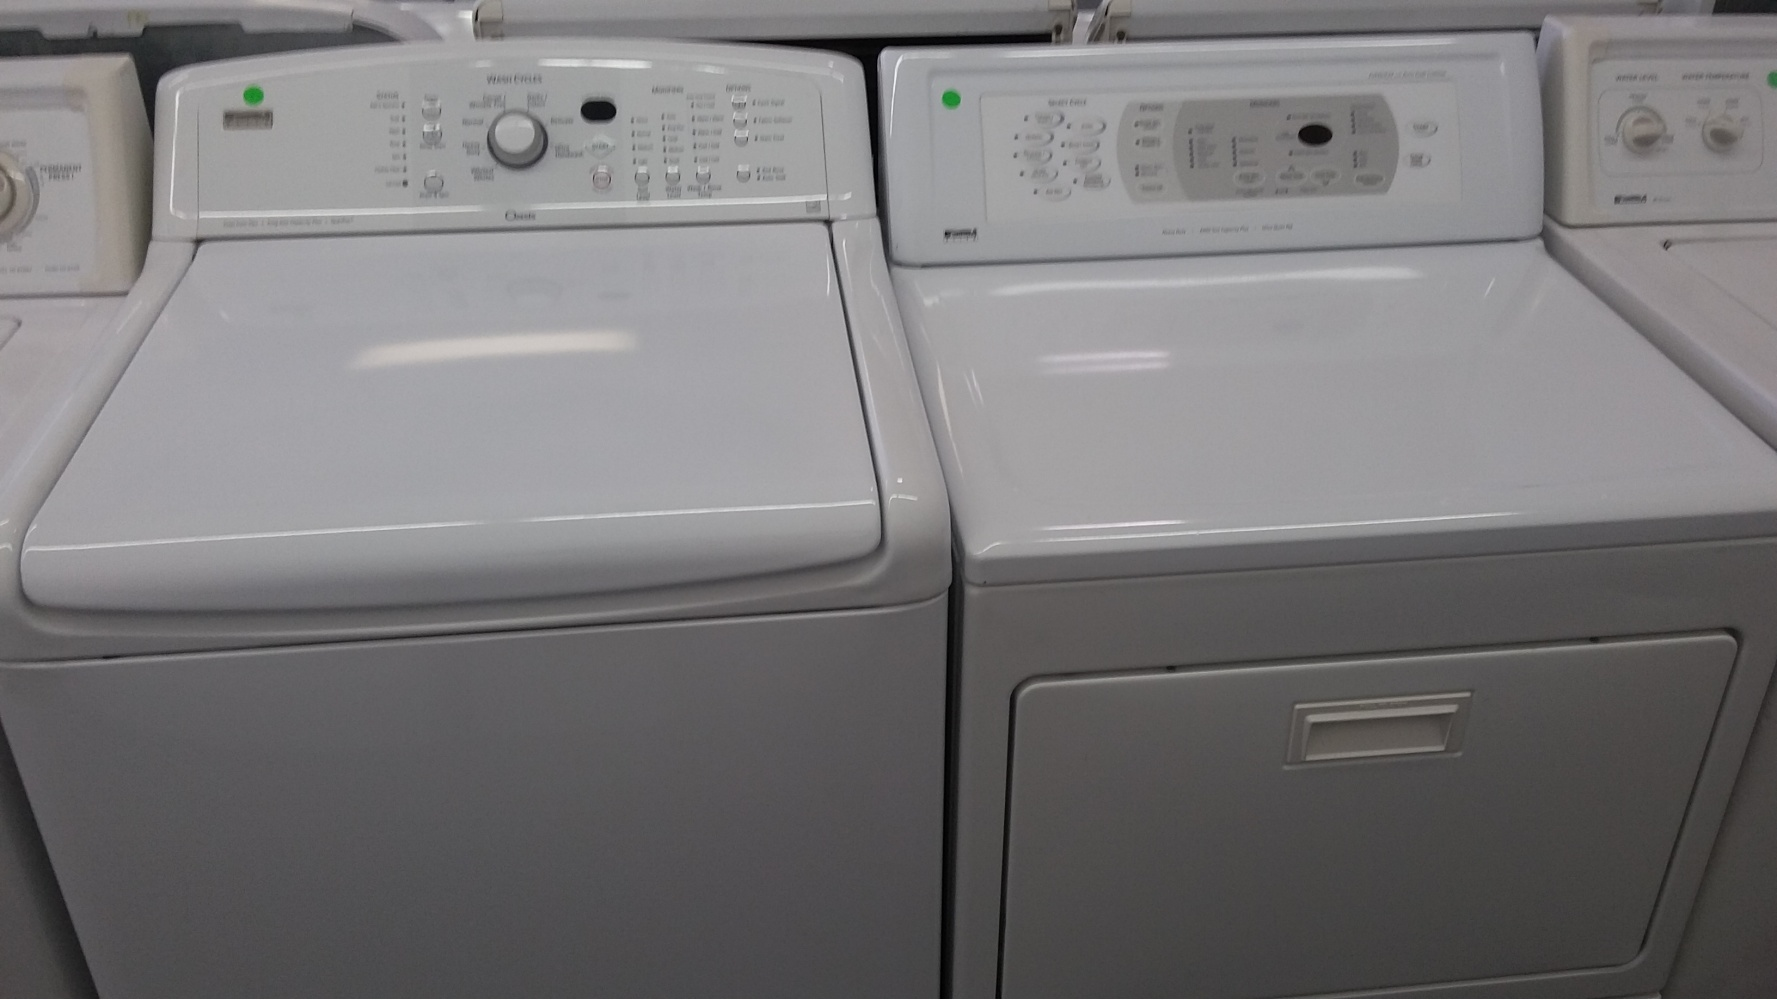 Kenmore Elite White High Efficiency Top Load Washer W Gas